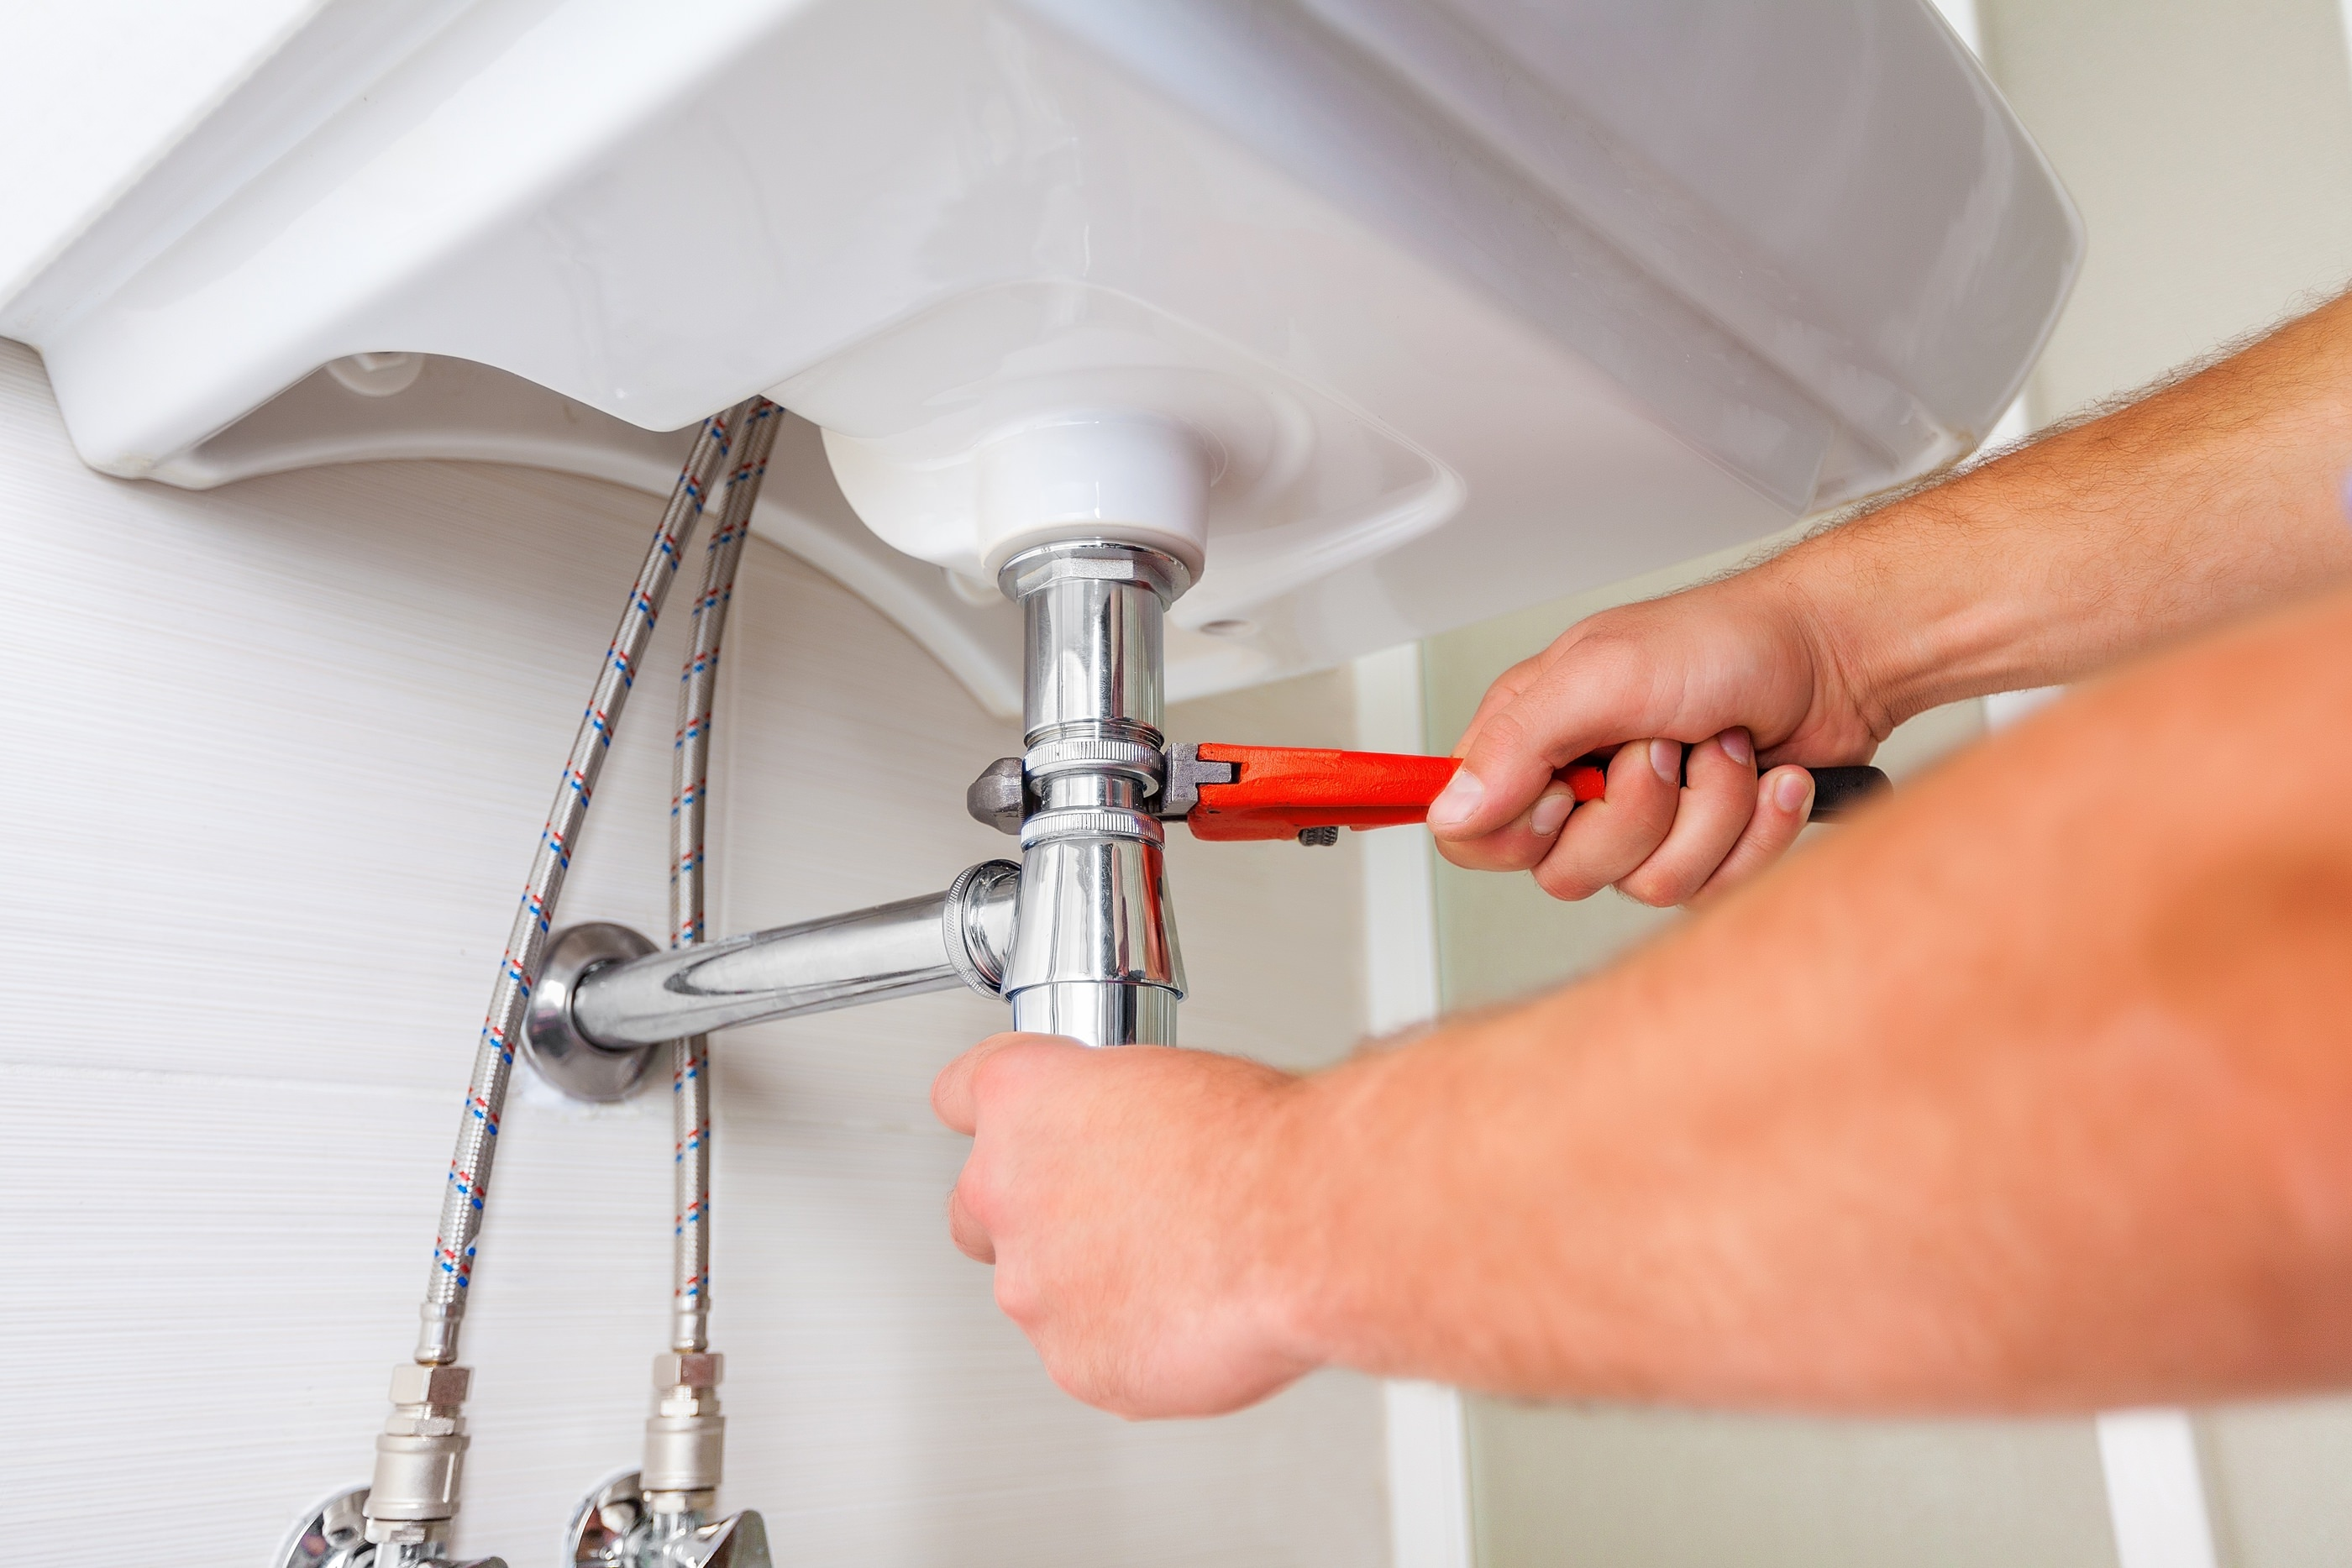 man fixing pipes under a white sink with a red wrench